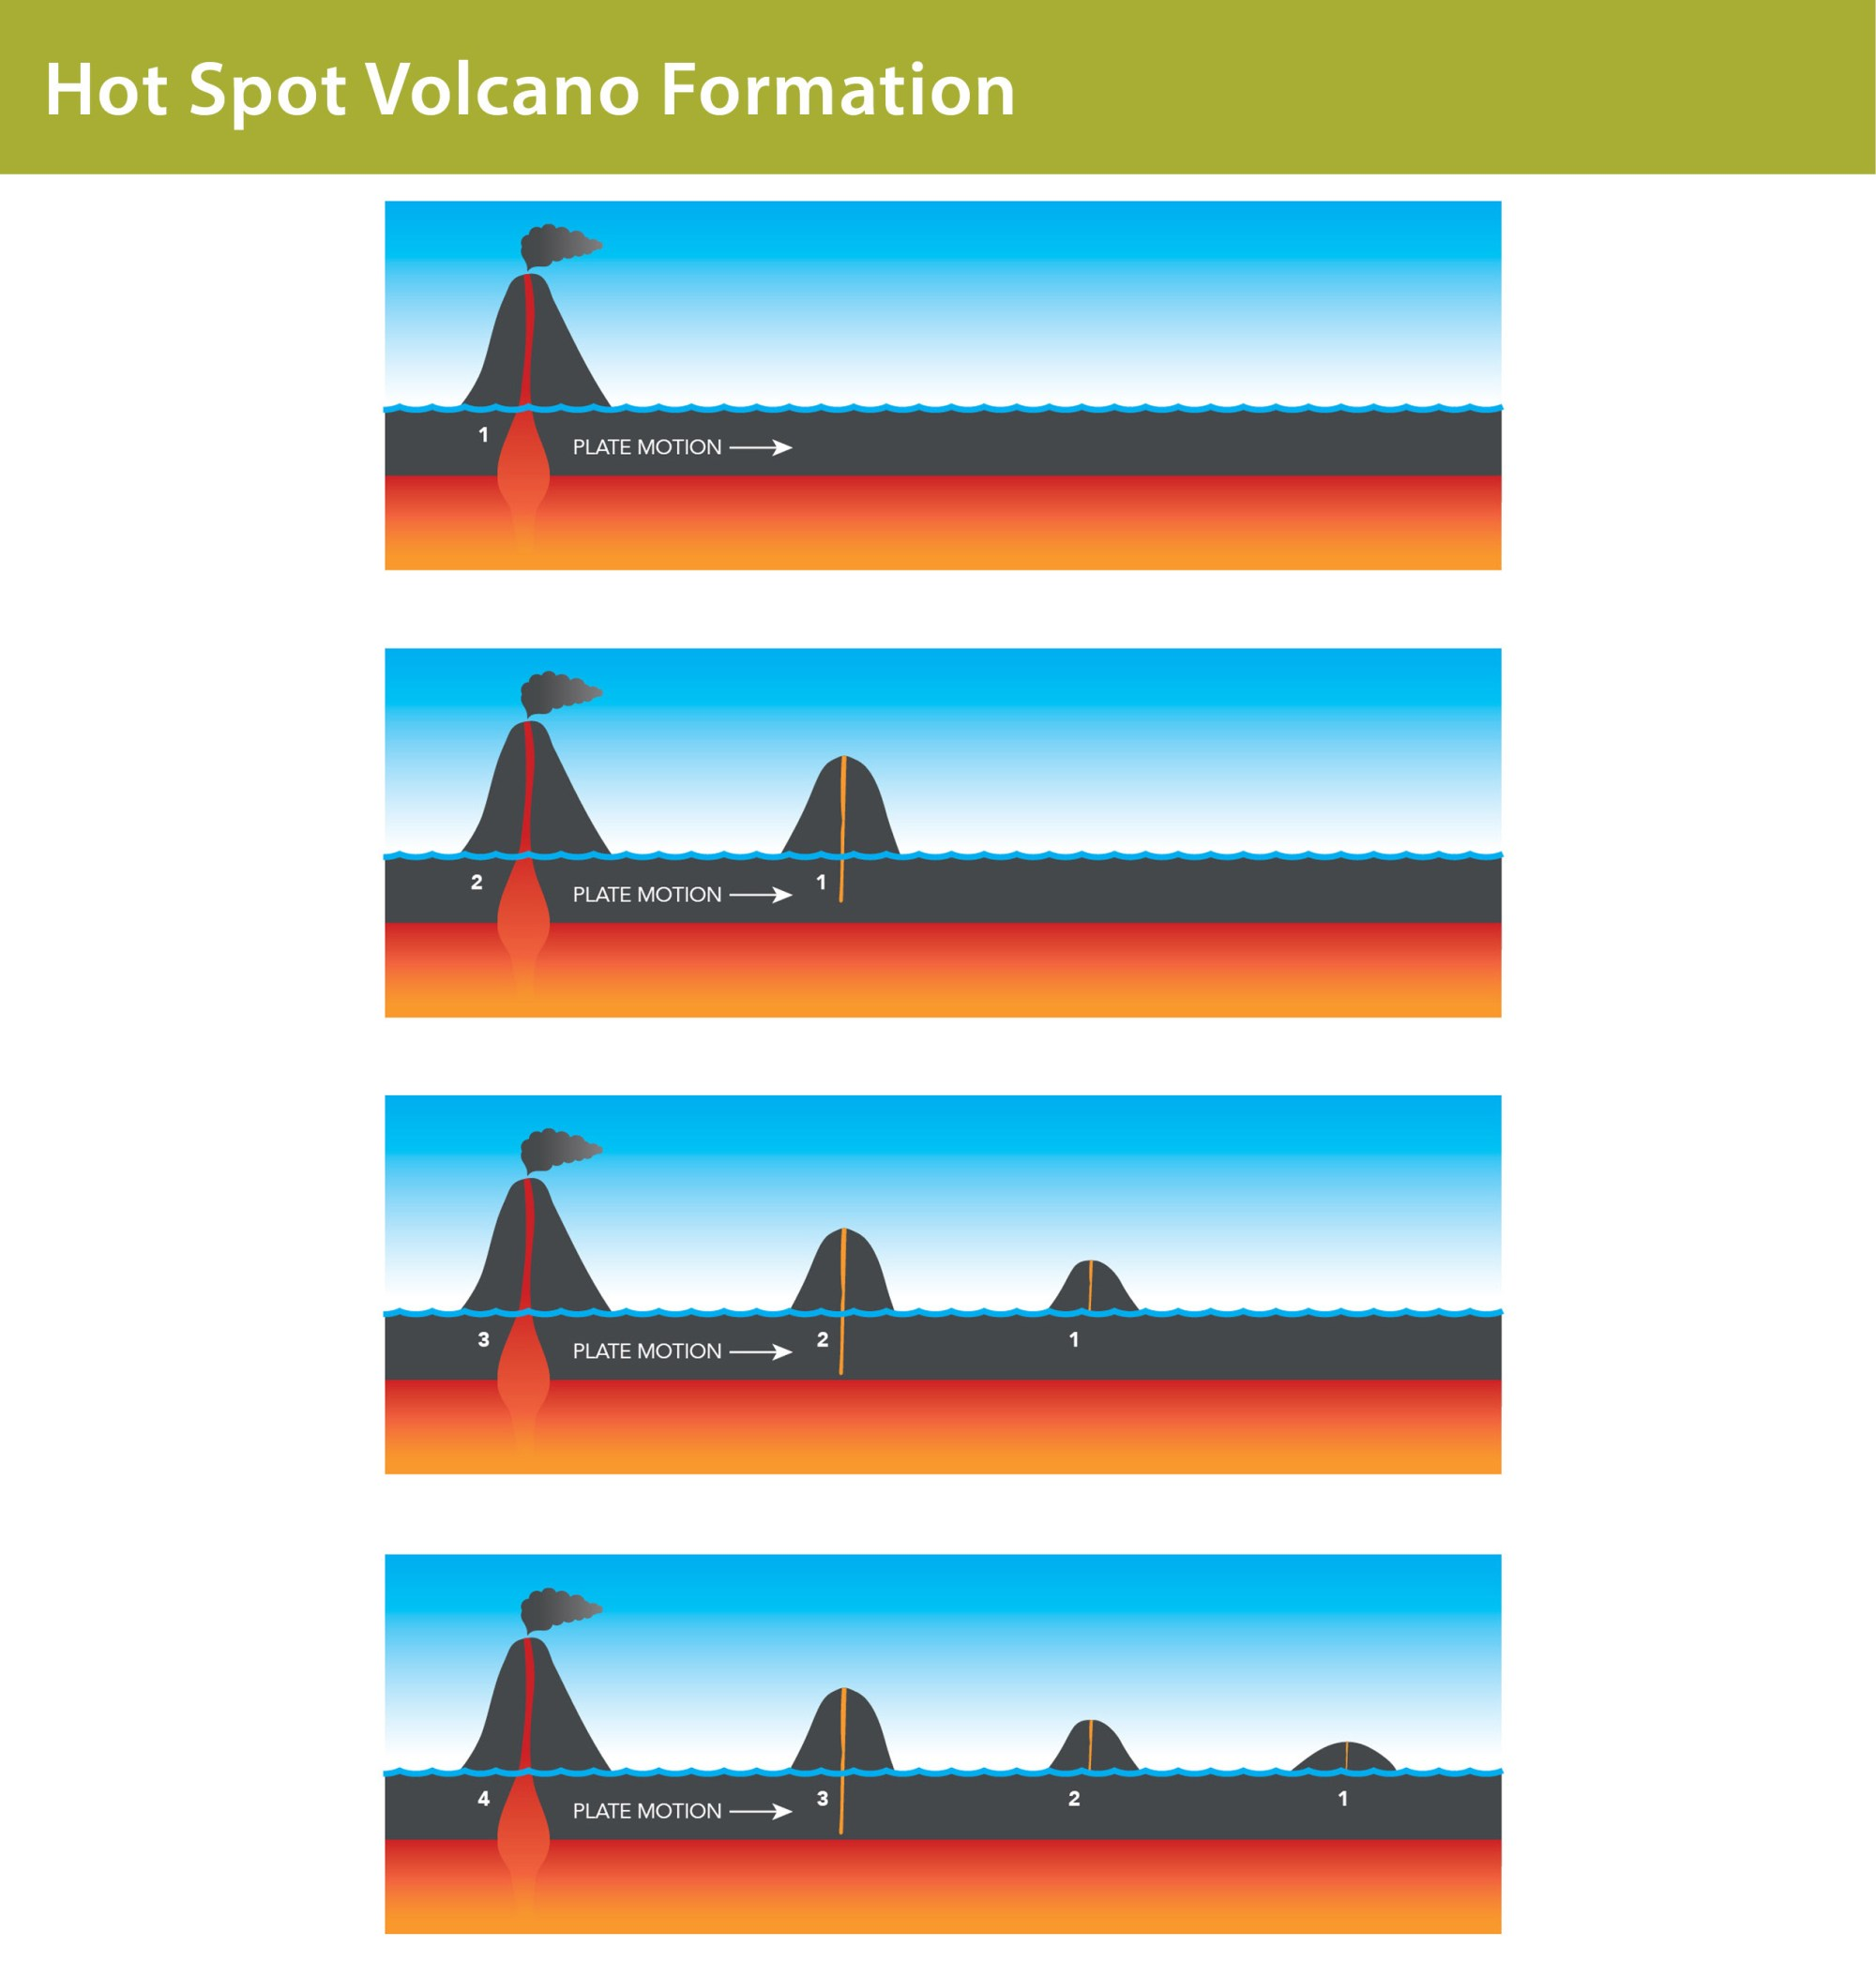 hight resolution of galapagos graphics a diagram to show hot spot volcano formation lisa brown